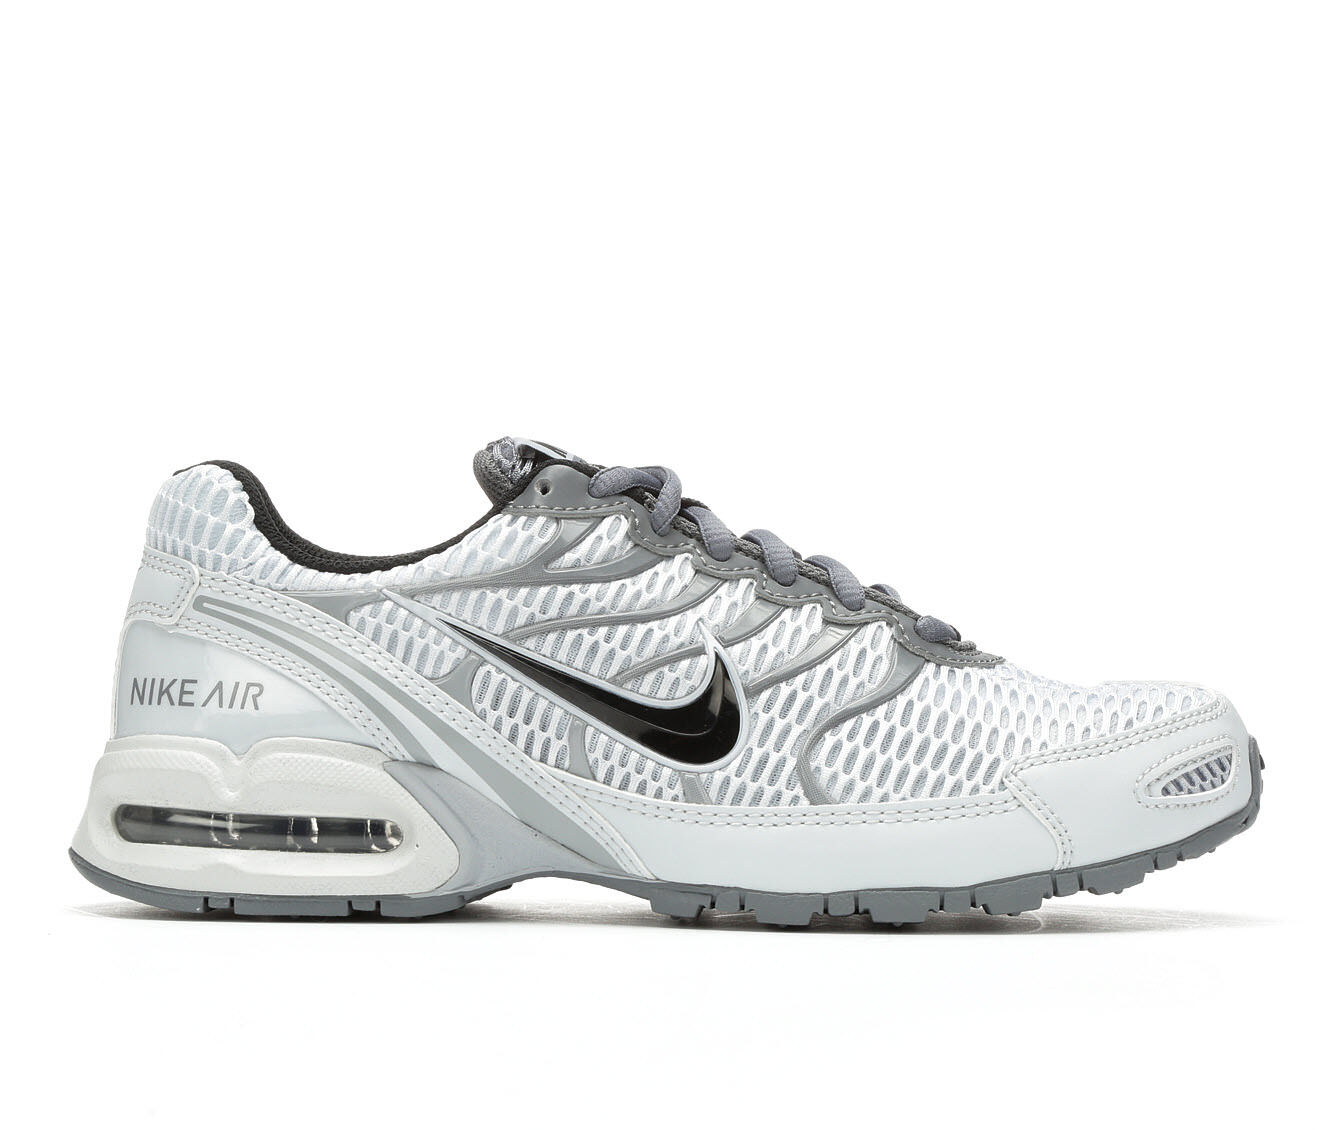 51ebc0b55ab650 ... where can i buy womens nike air max torch 4 running shoes shoe carnival  56e72 ee2e5